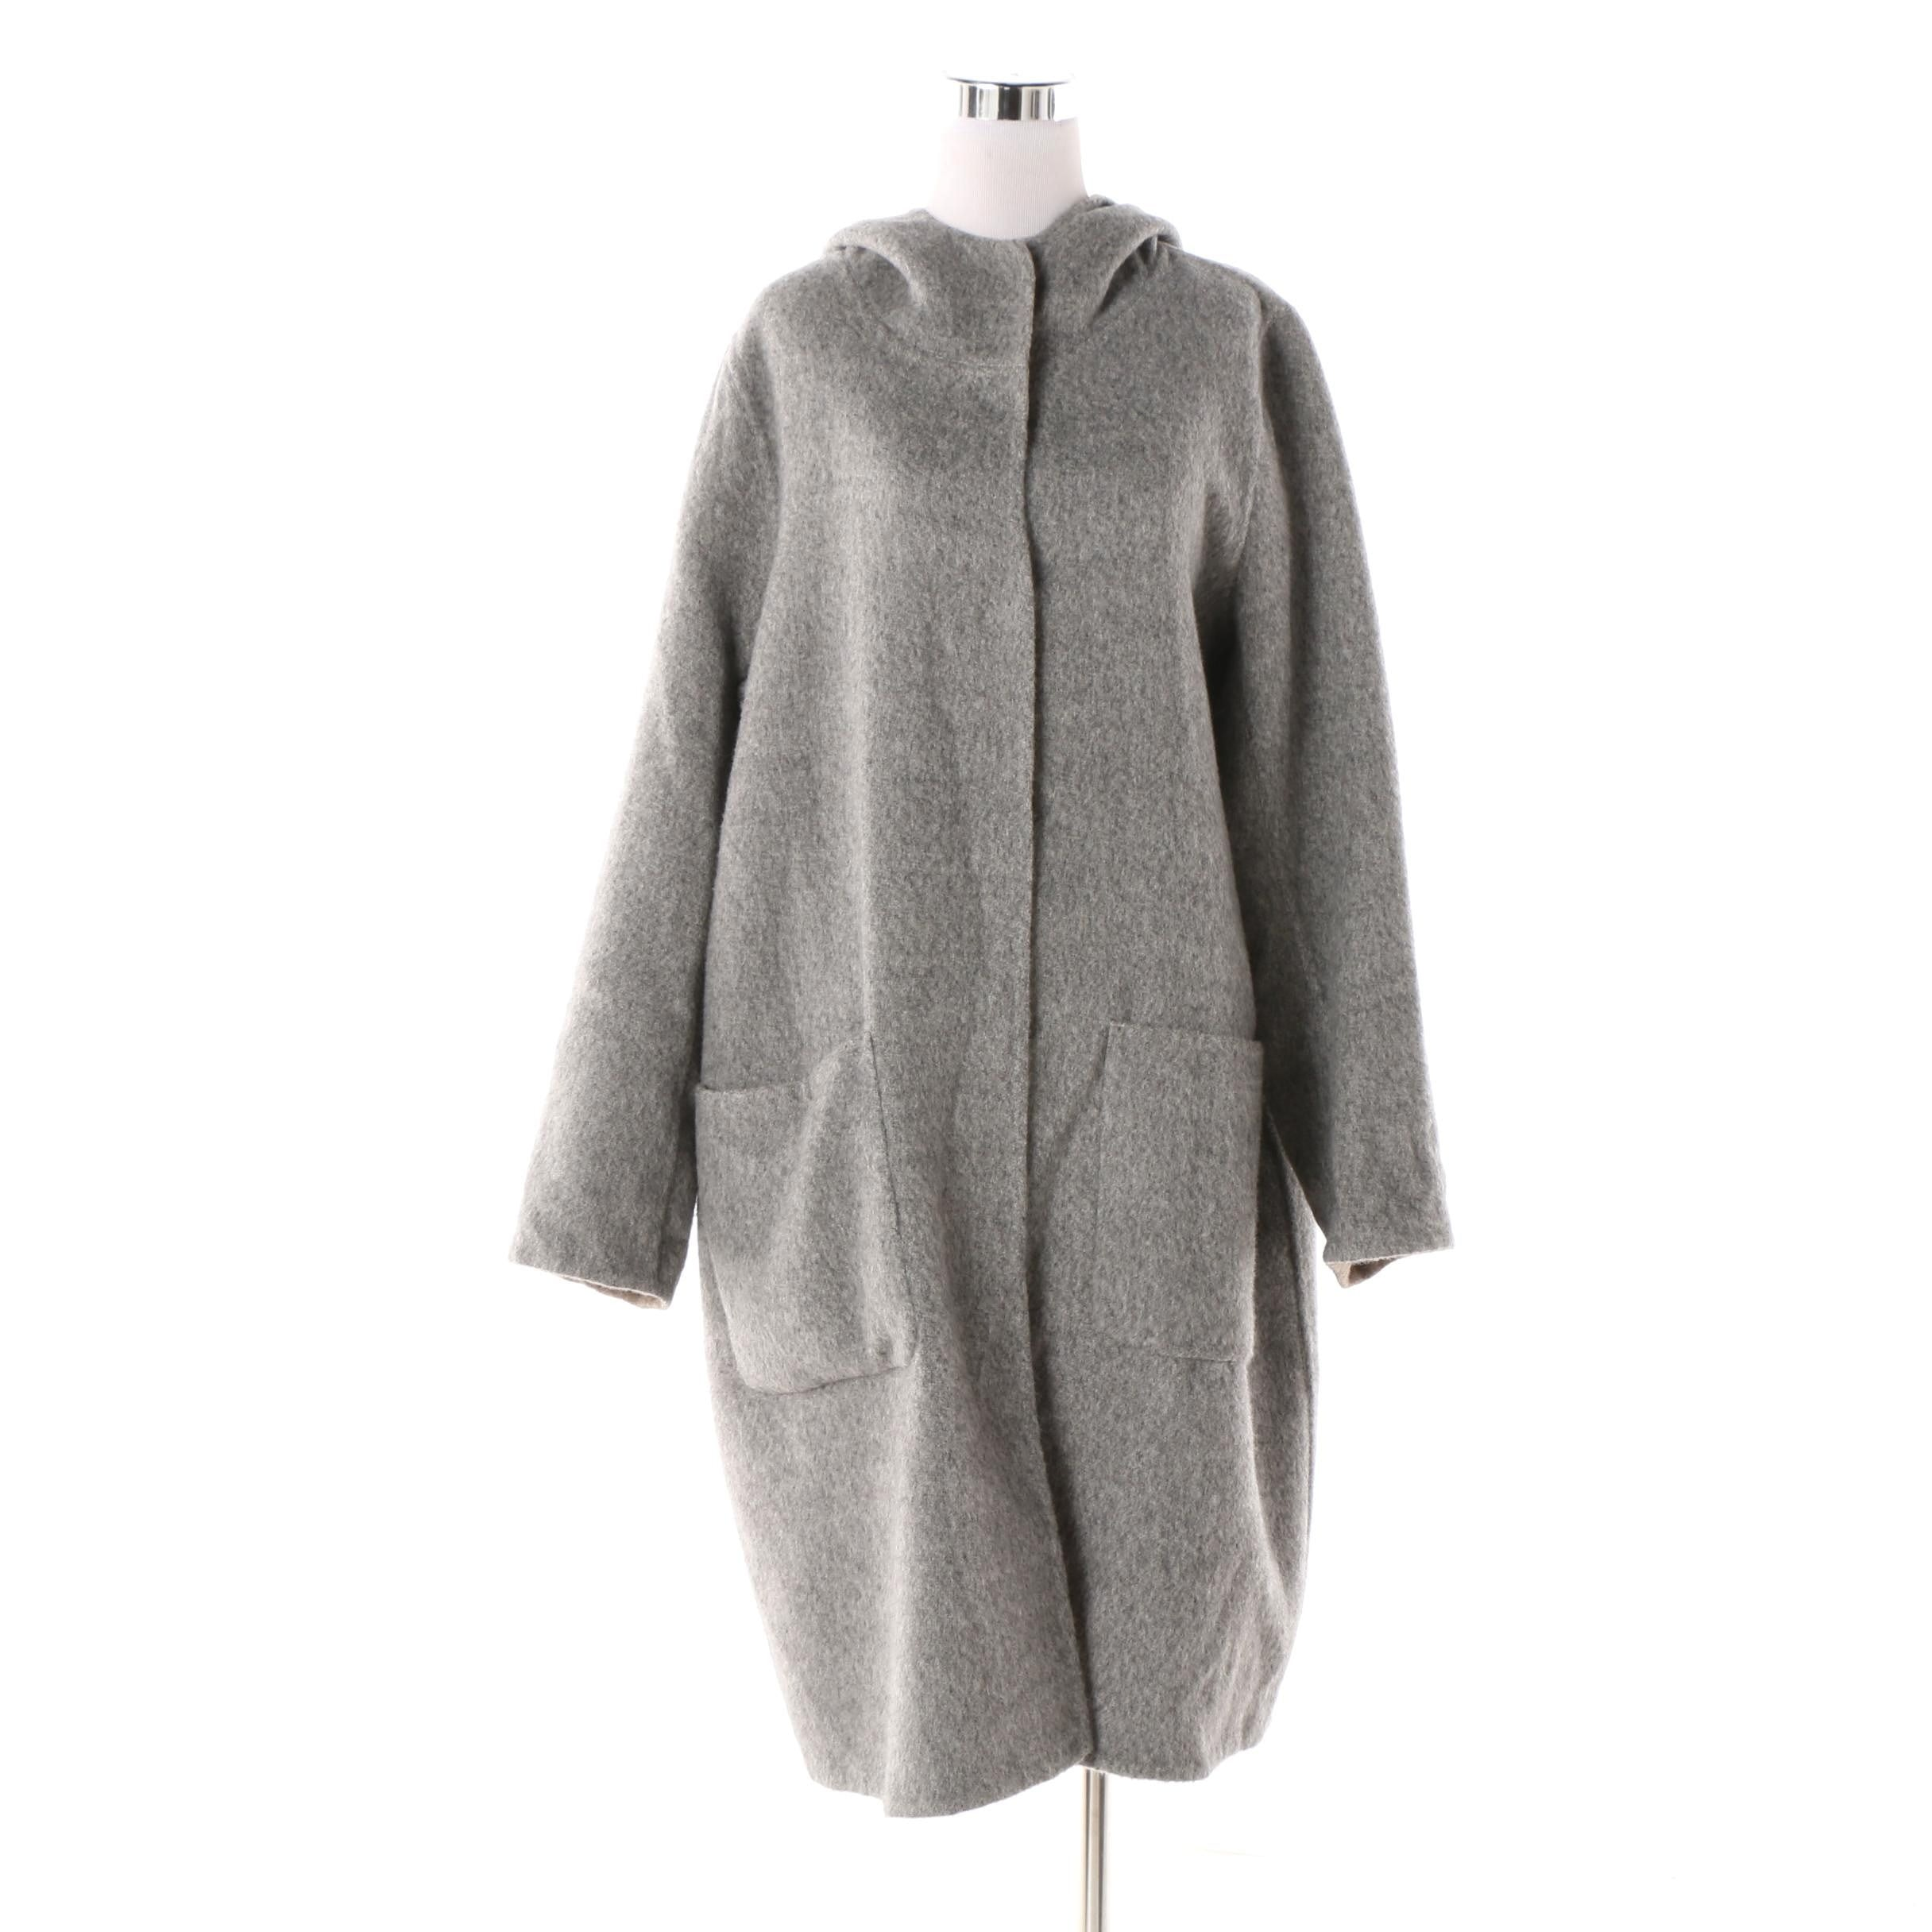 Women's Eileen Fisher Grey Baby Alpaca and Wool Blend Knit Hooded Coat